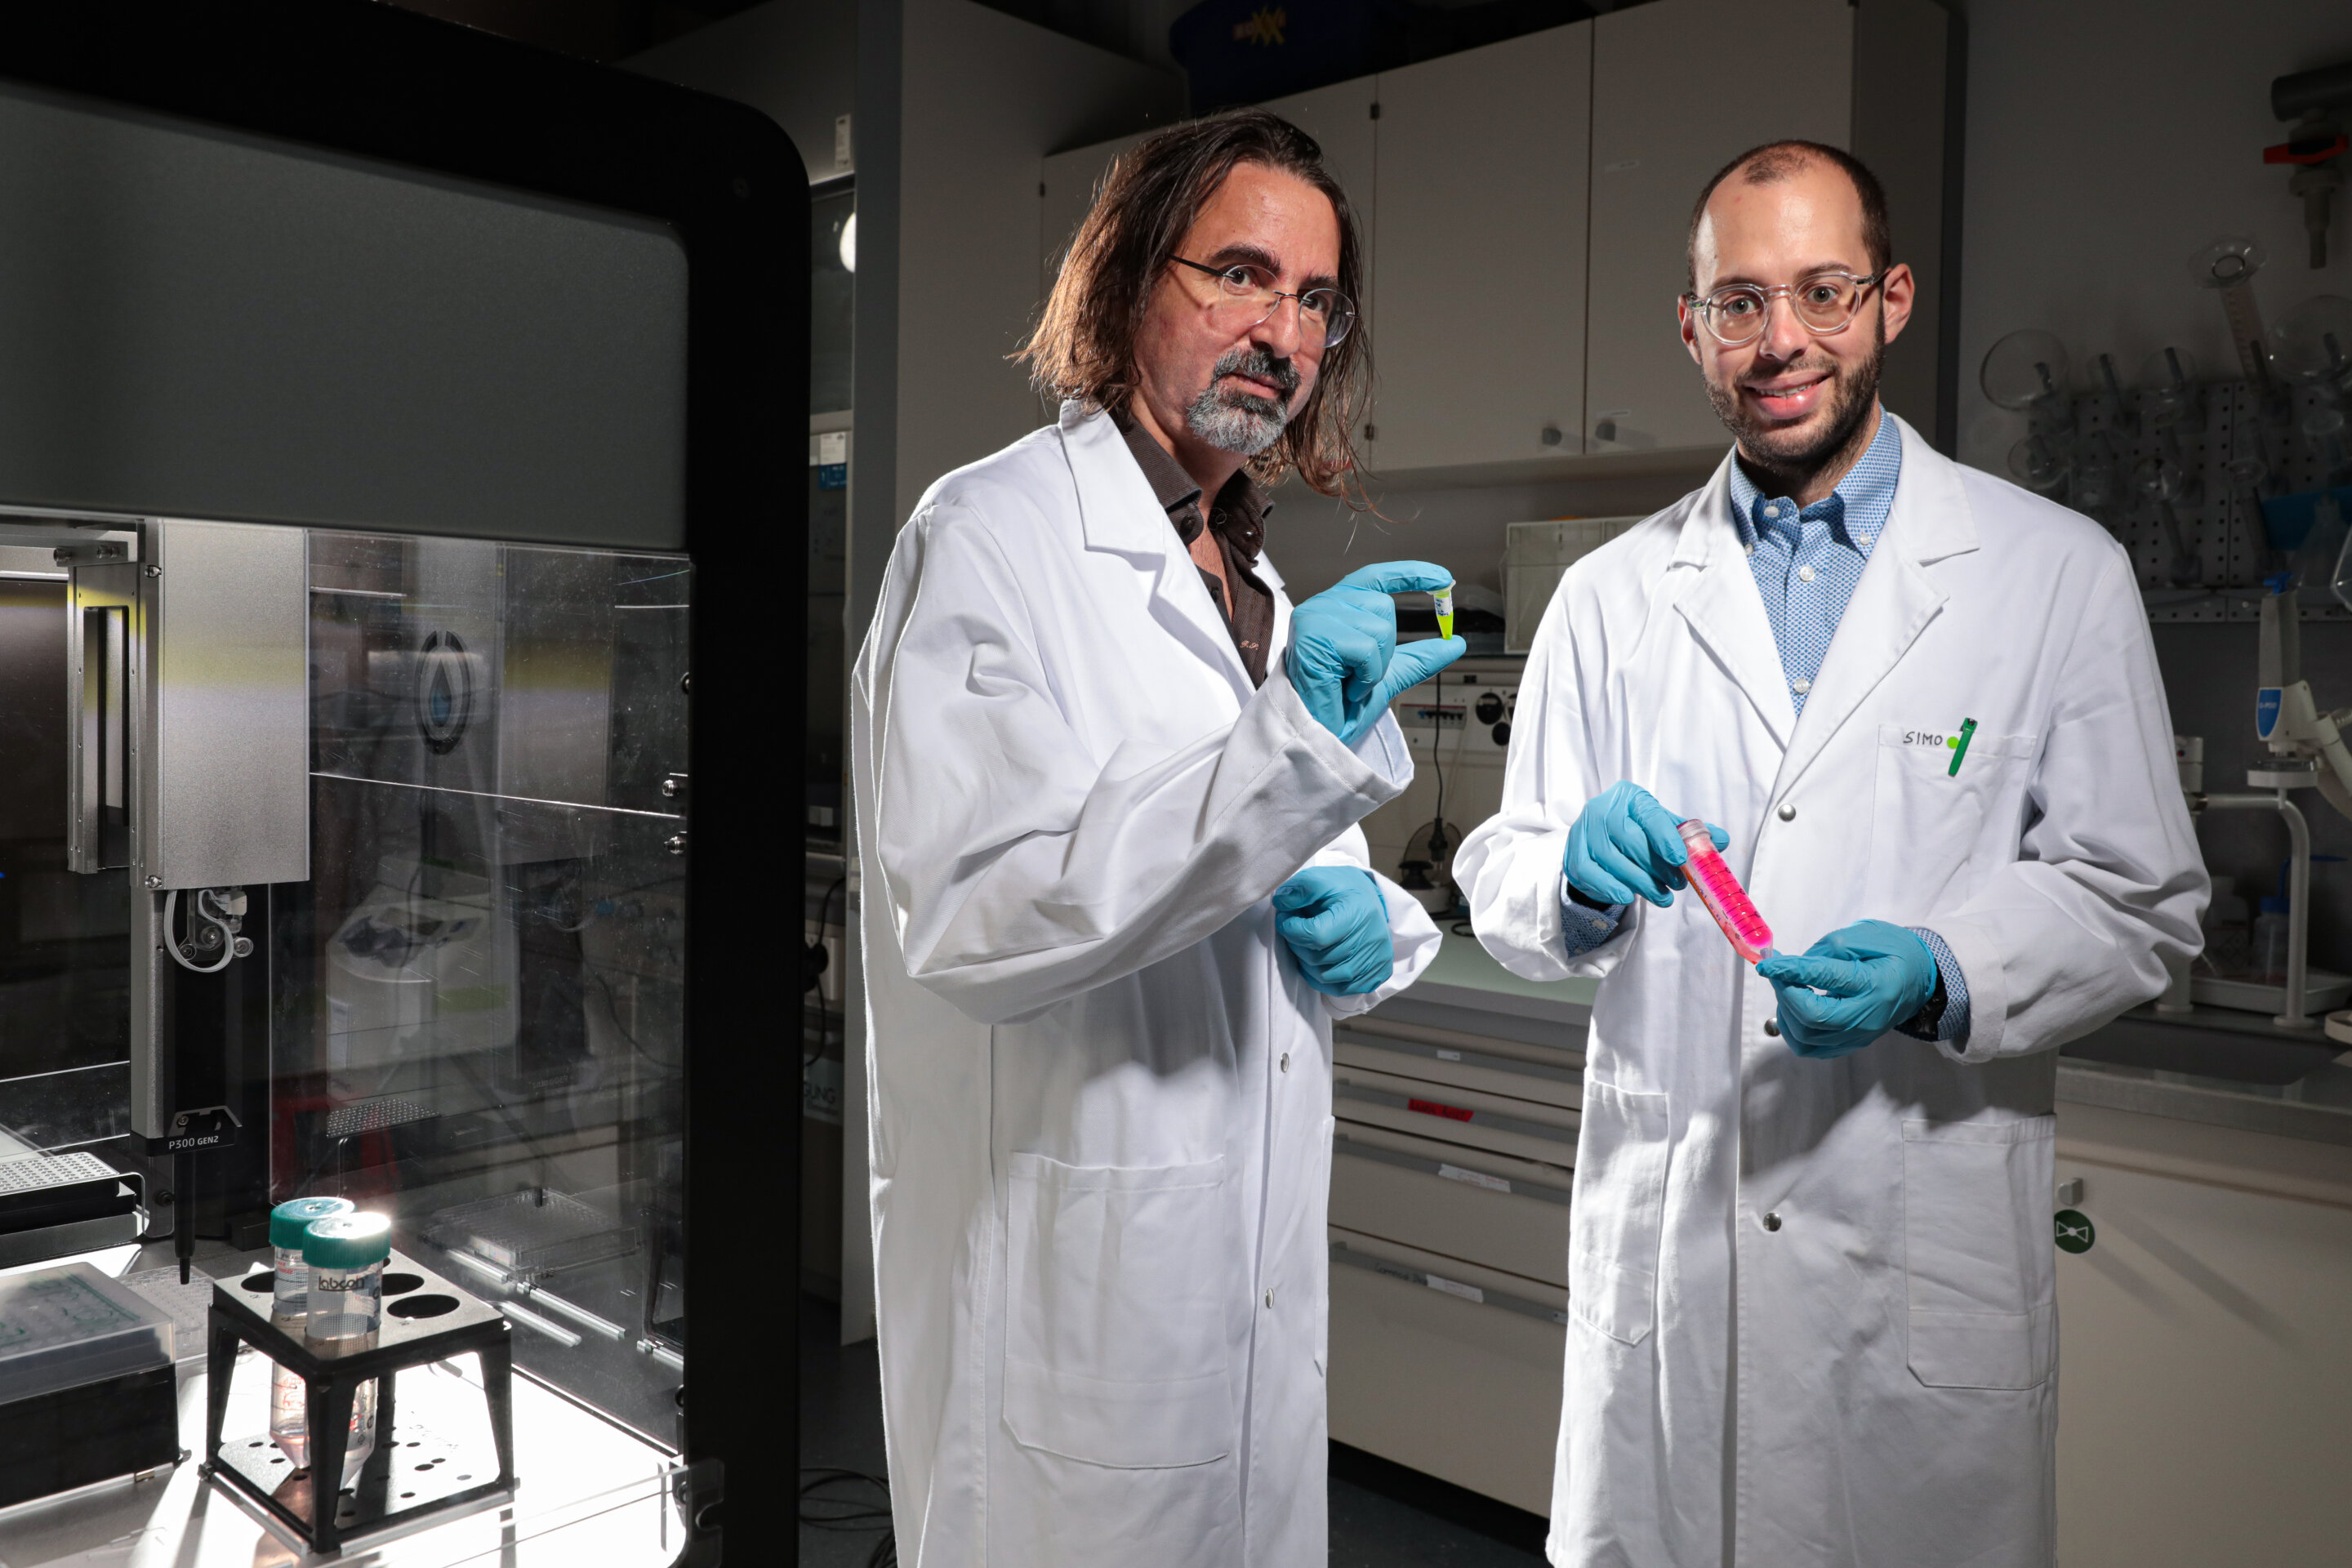 Engineers introduce a new approach for recycling plastics